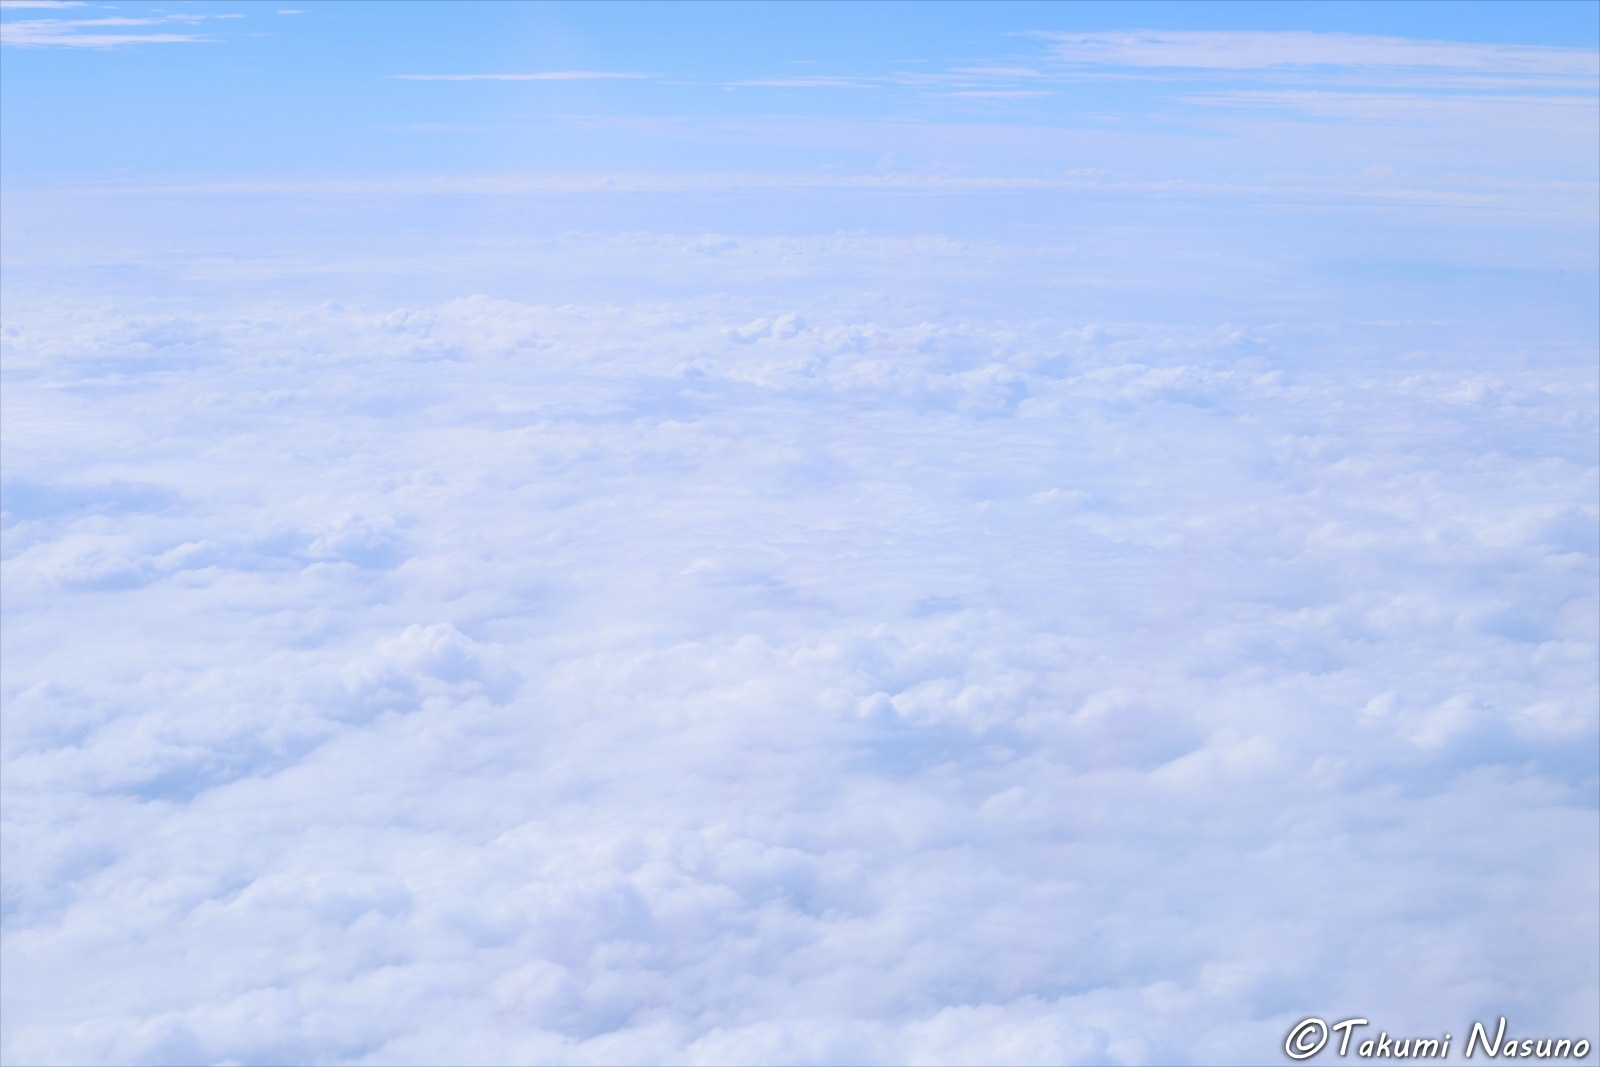 Lanscape of Sky from Aircract